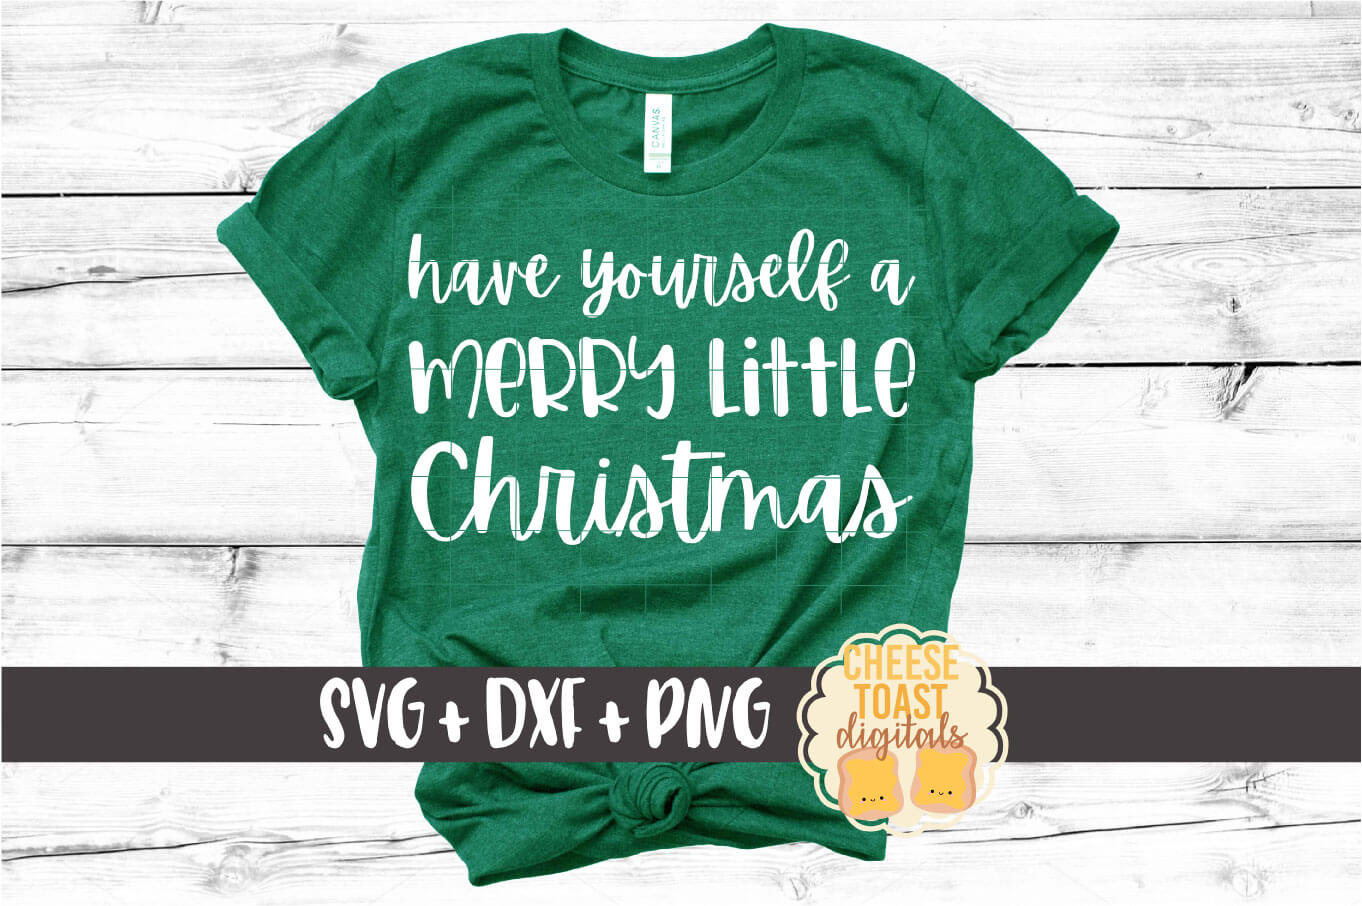 Have Yourself A Merry Little Christmas - SVG PNG DXF Files example image 1